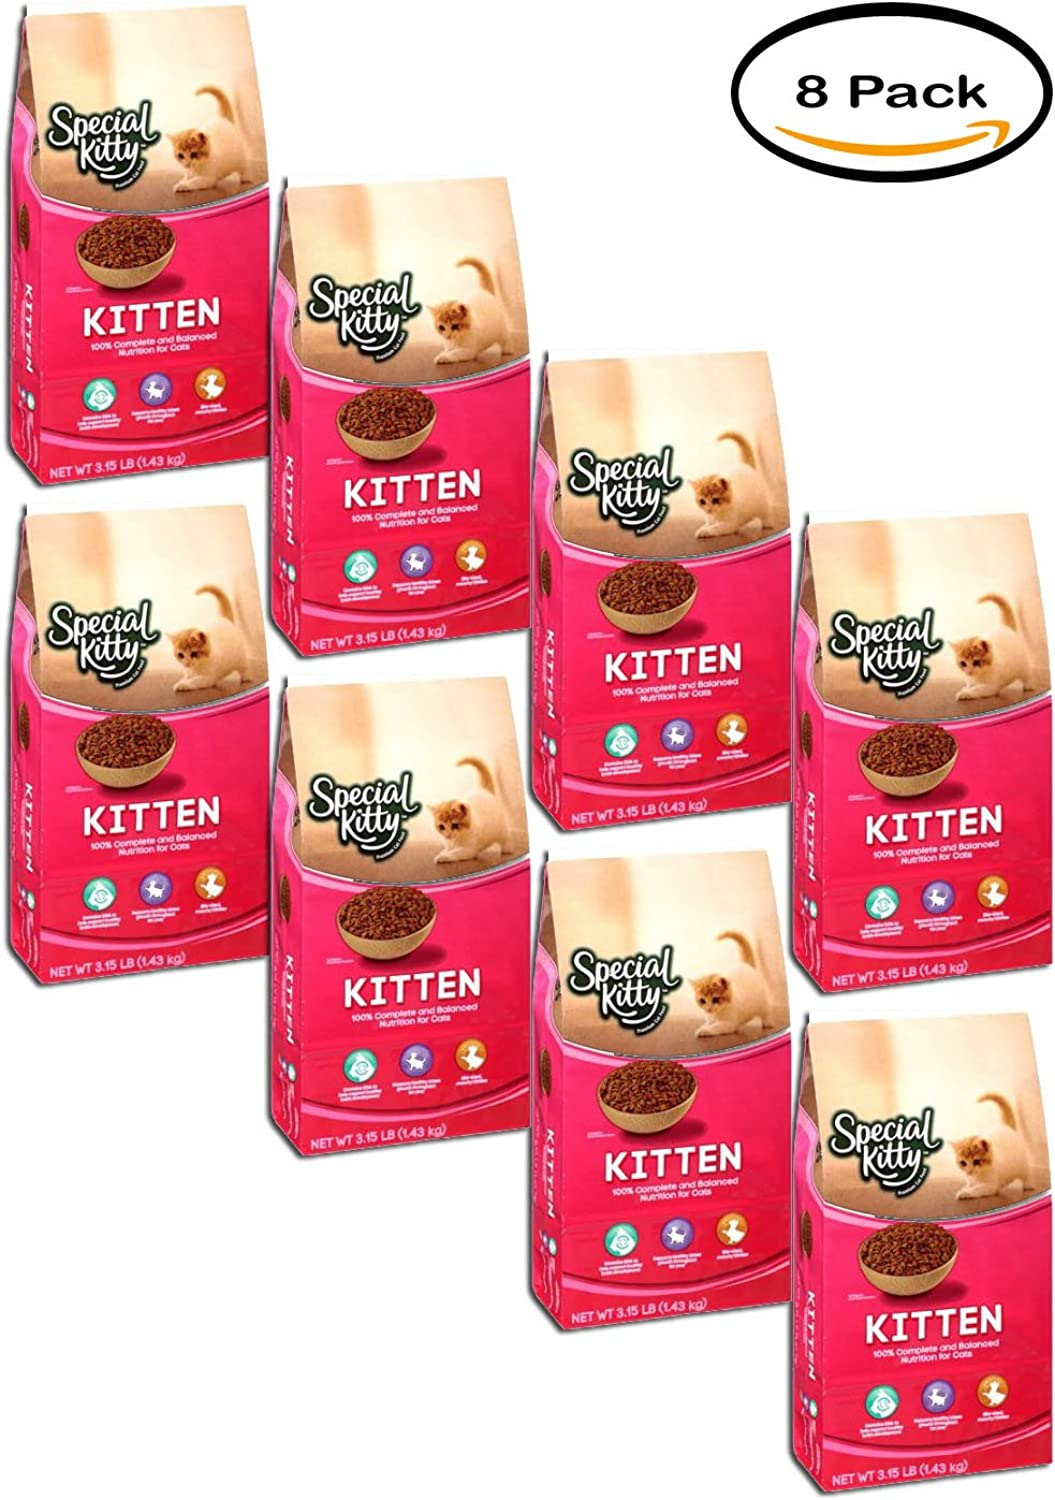 PACK OF 8  Special Kitty Kitten Formula Dry Cat Food, 3.5 Lb